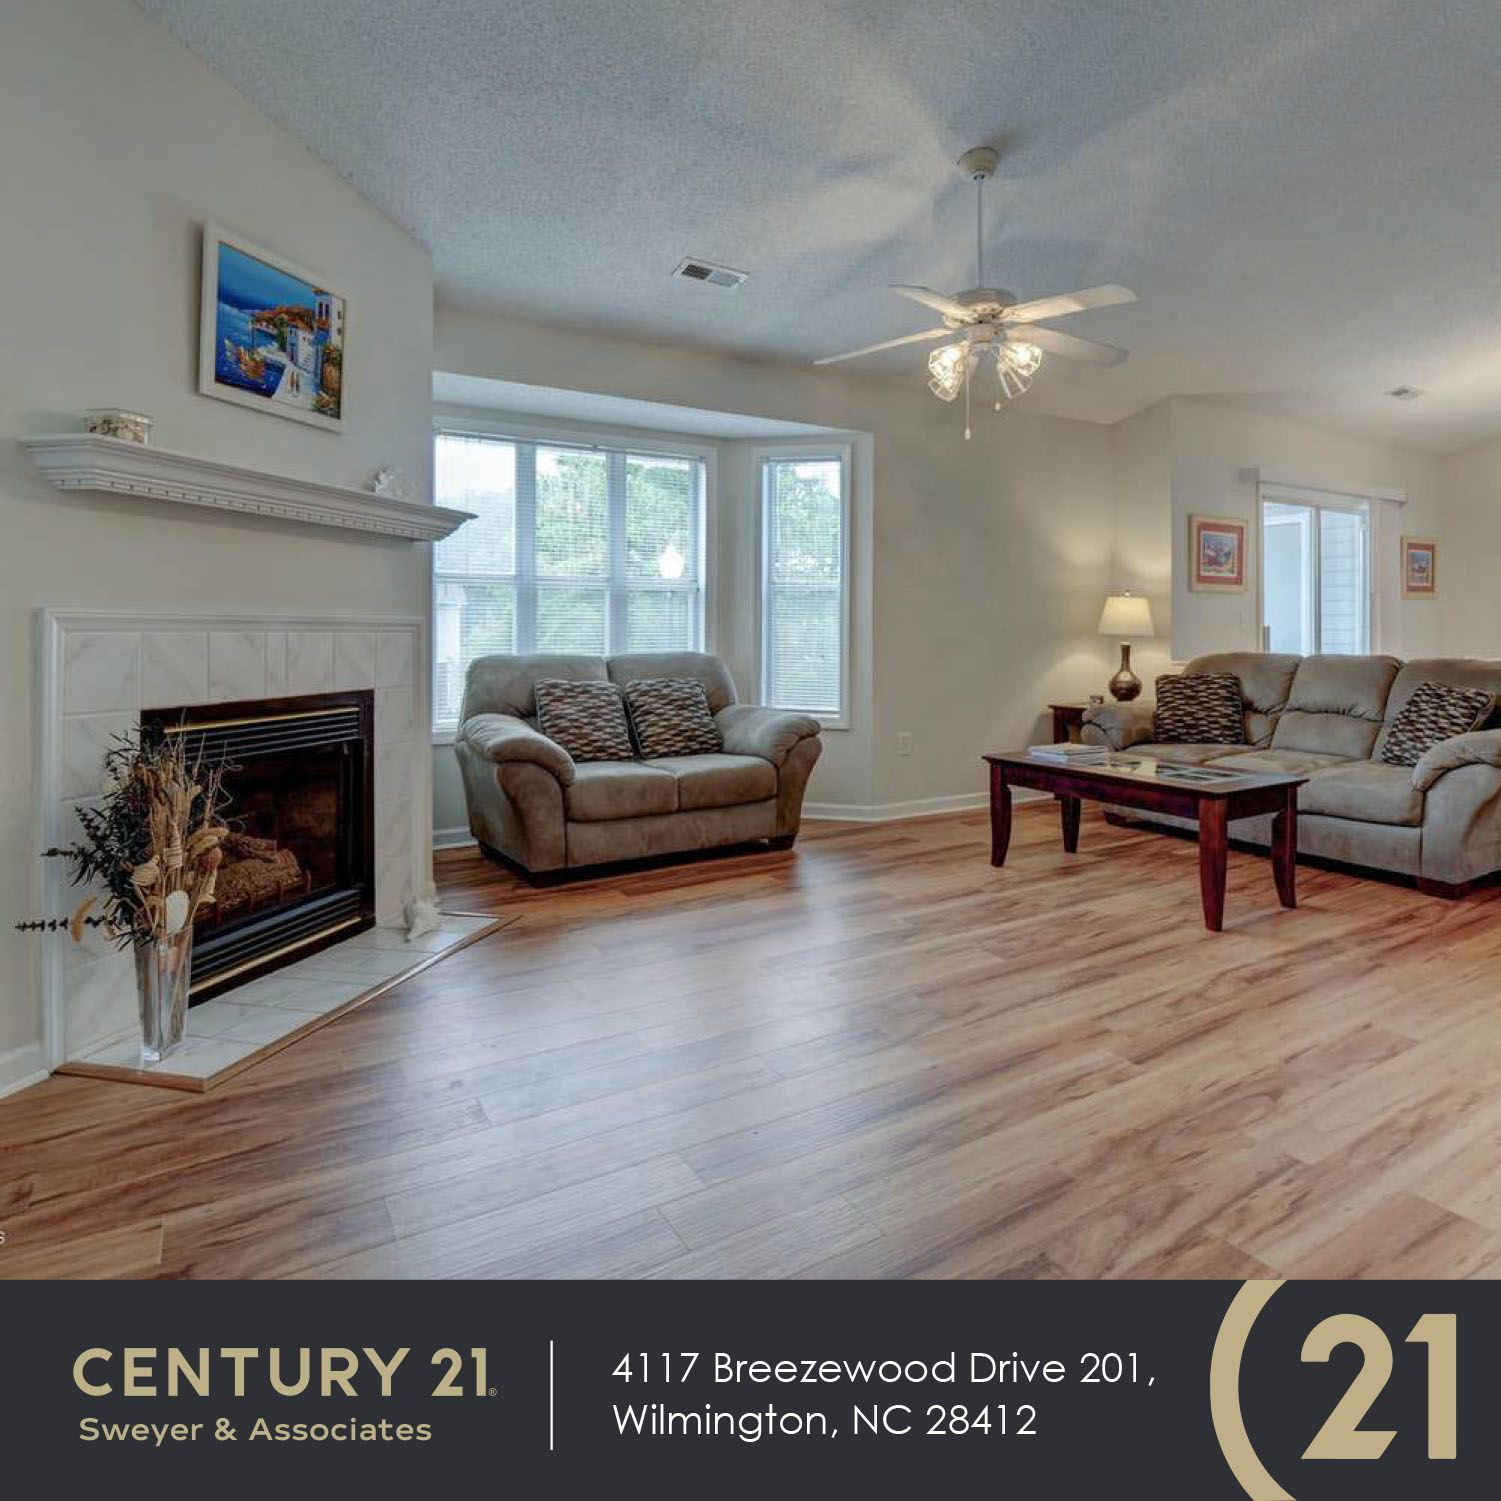 Pin On Century 21 Sweyer Associates Featured Homes